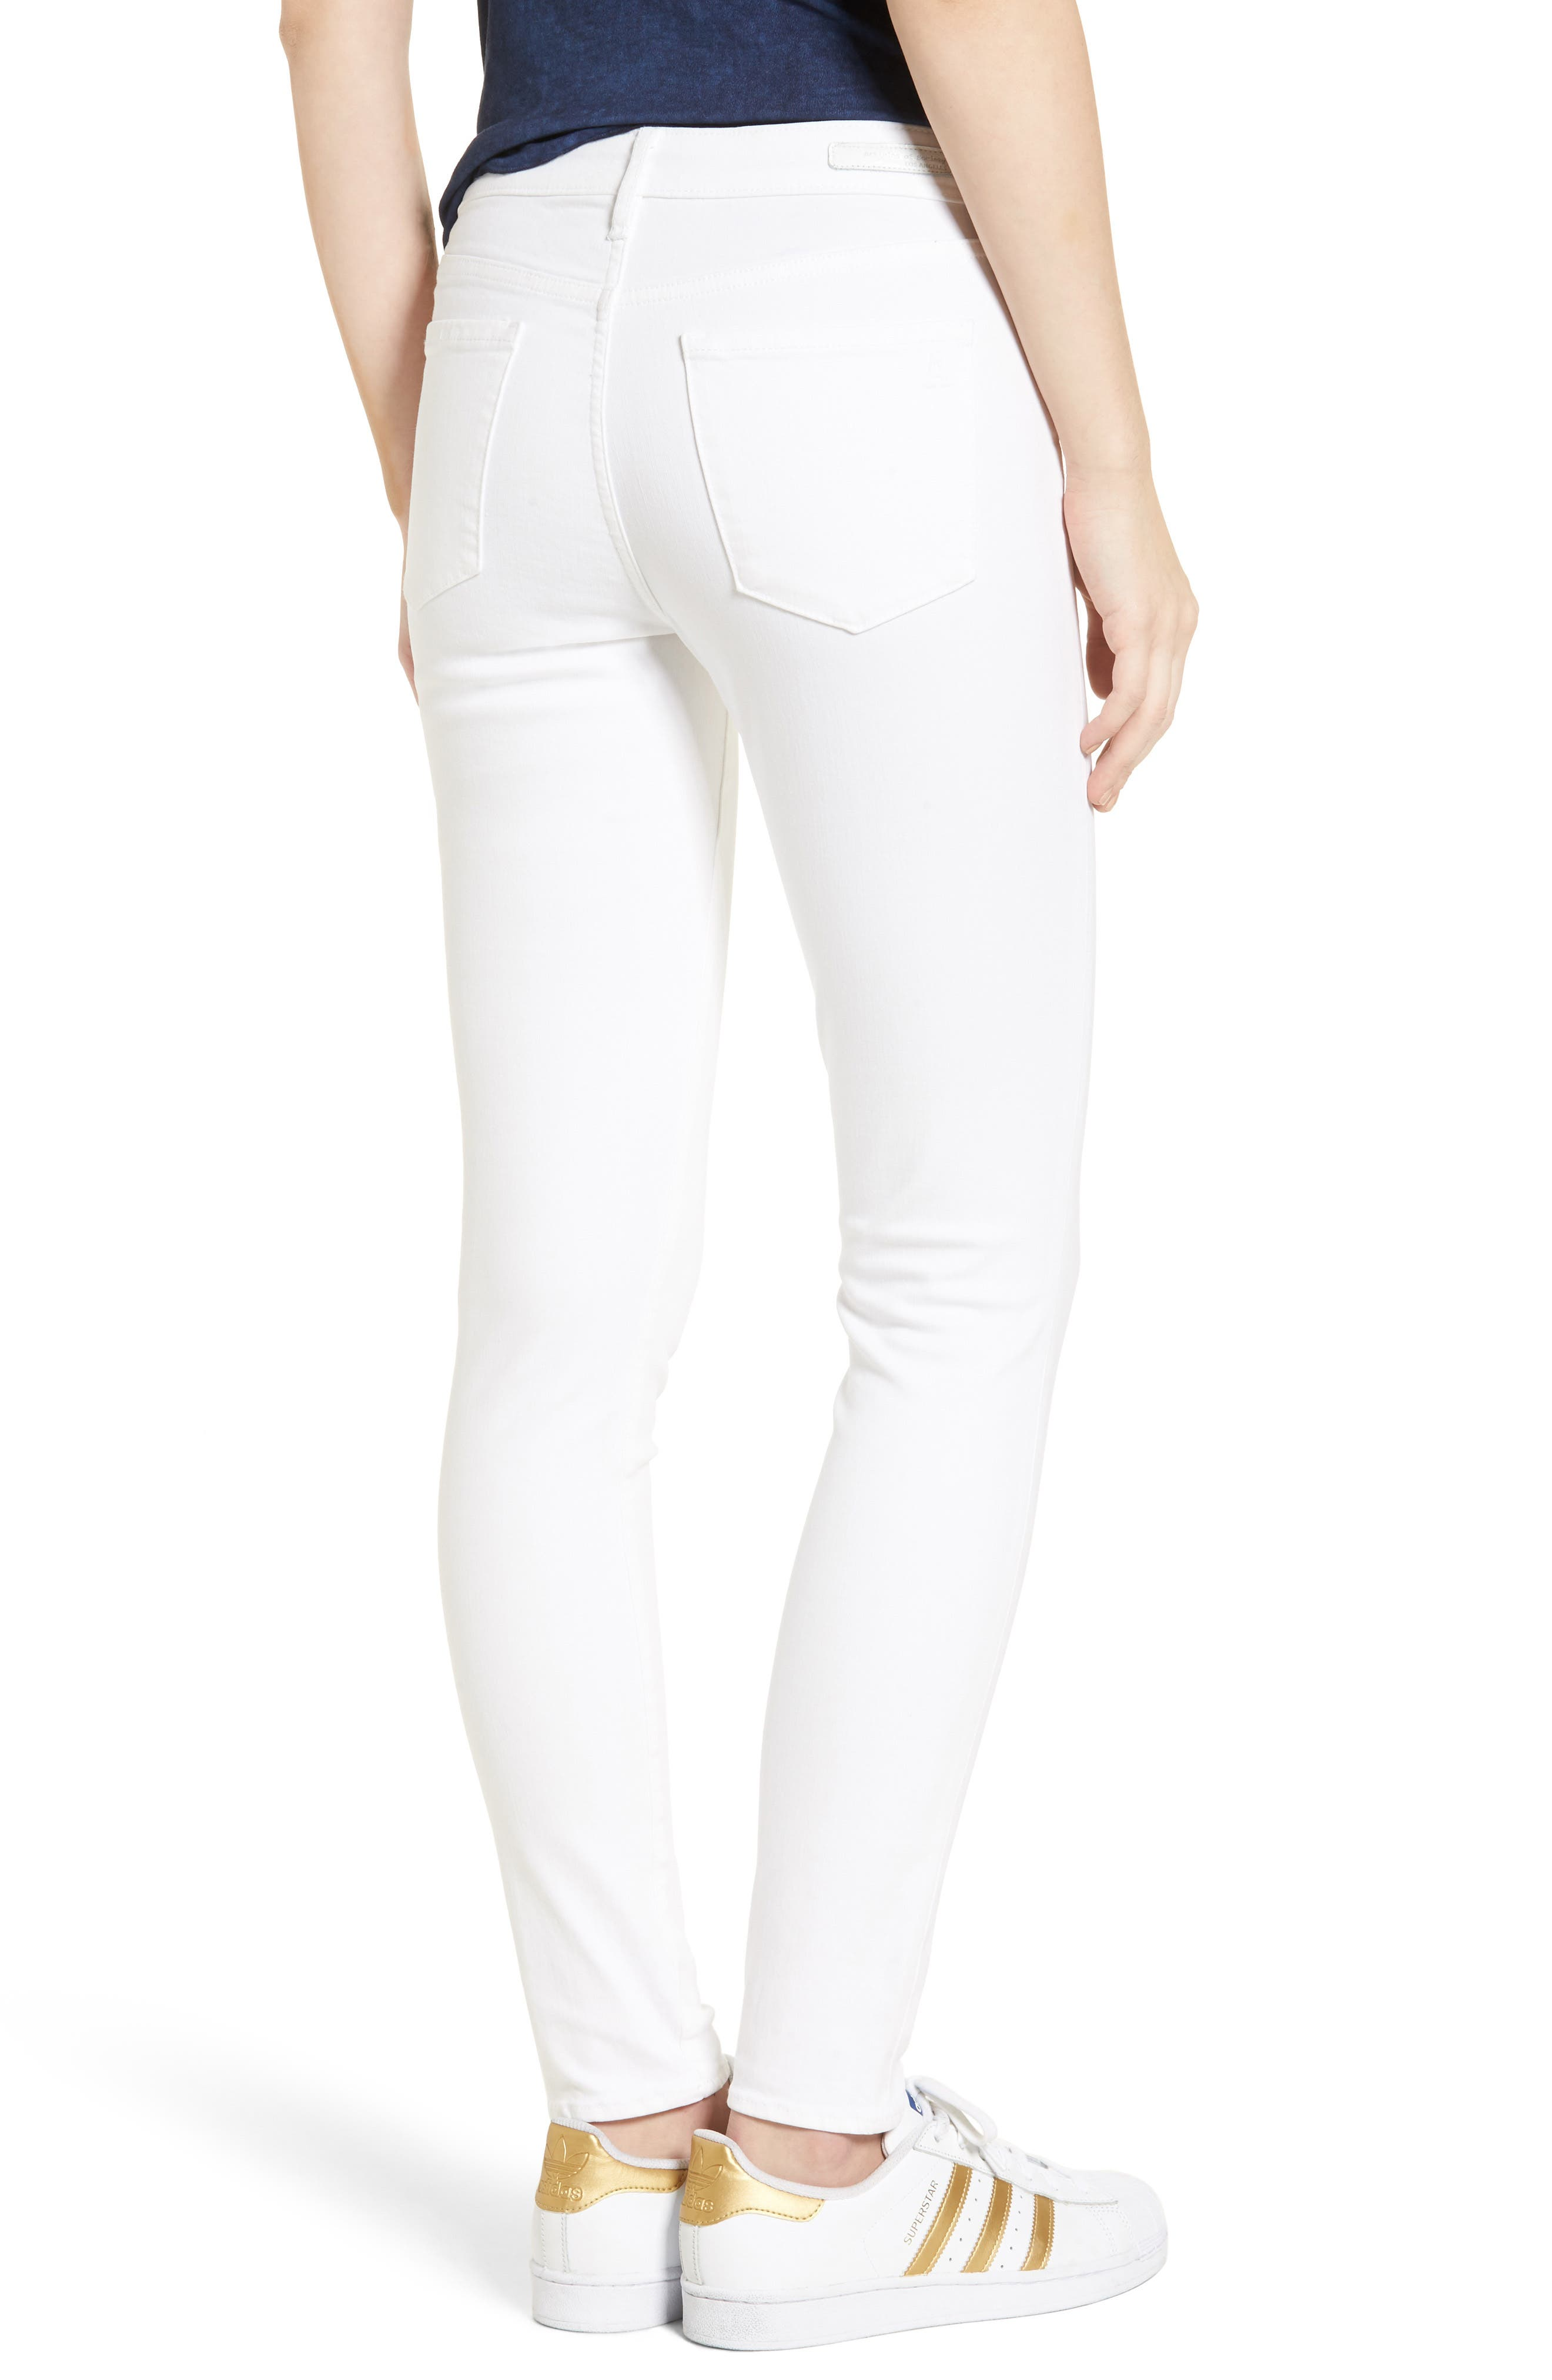 ARTICLES OF SOCIETY, Sarah Skinny Jeans, Alternate thumbnail 2, color, 118